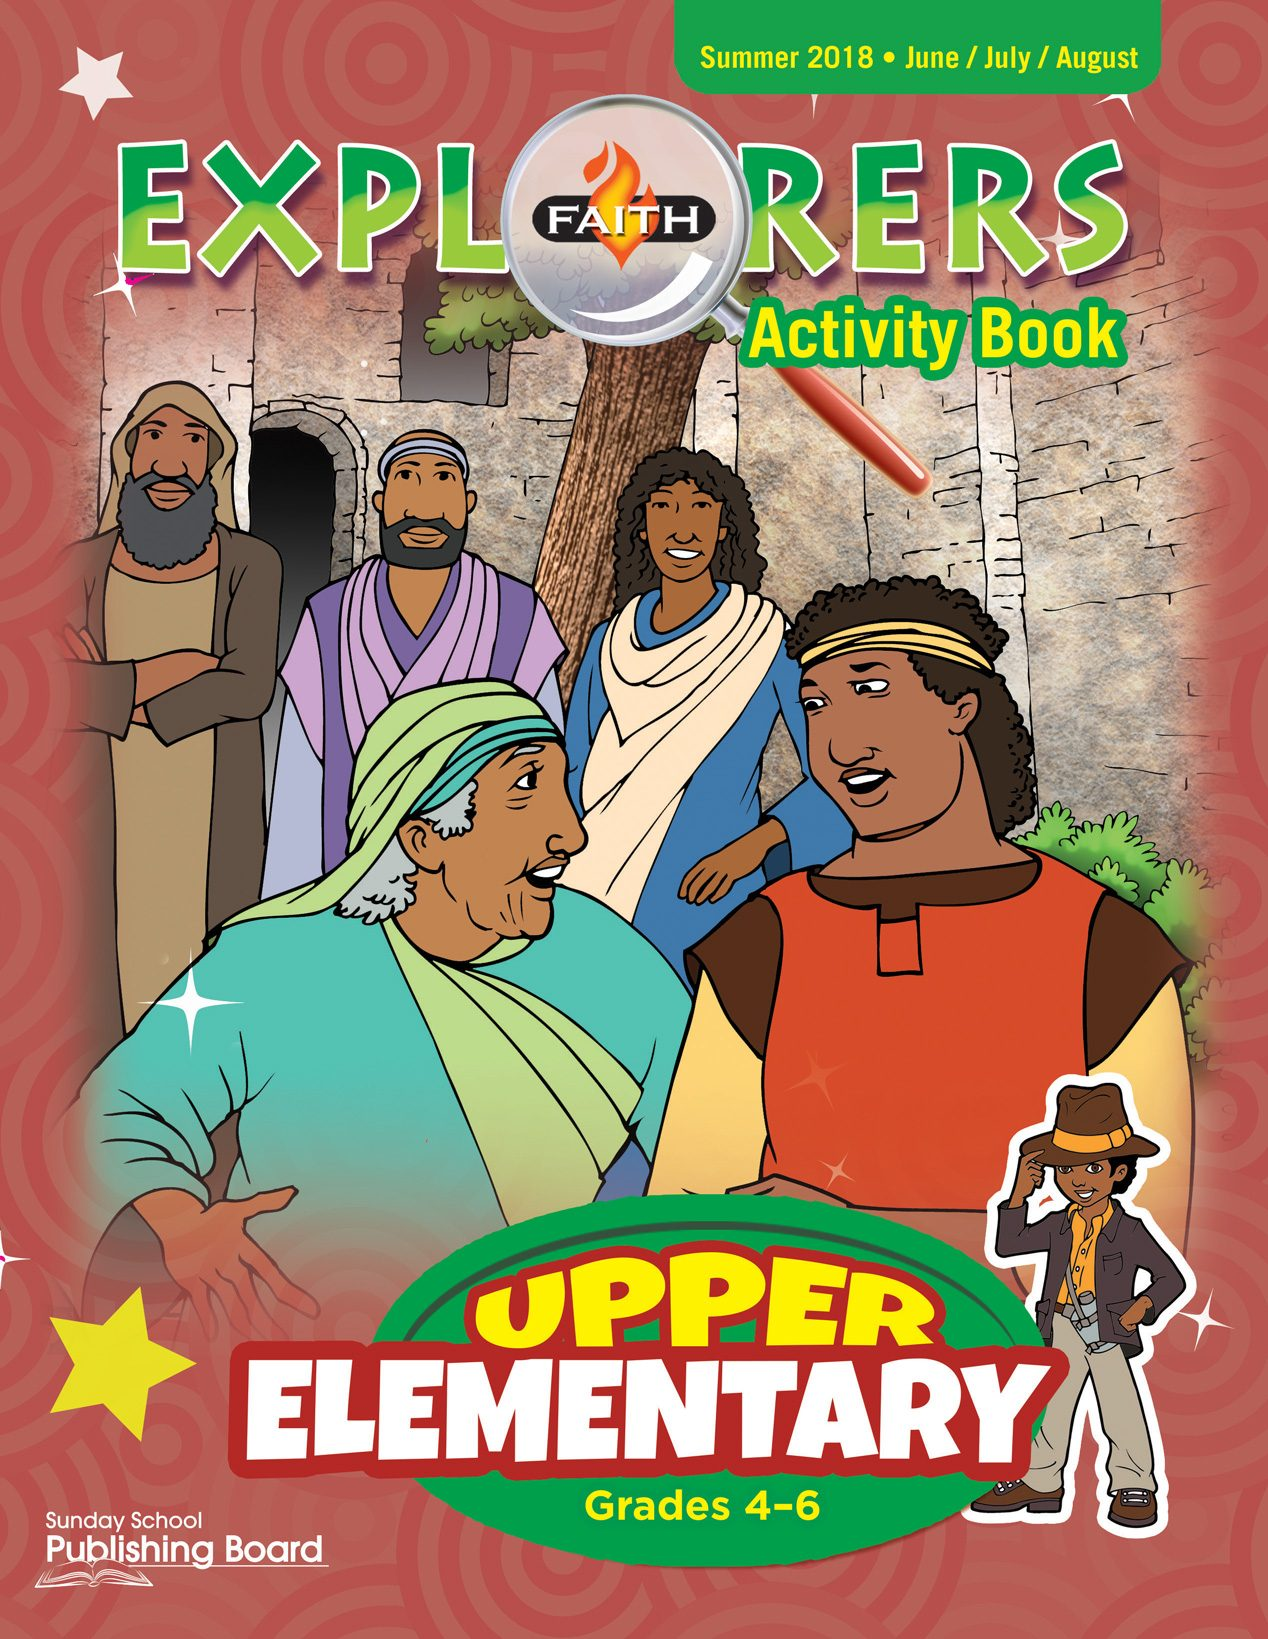 Faith Explorers Activity Book, Upper Elementary for Grades 4-6 (Summer 2018)-Digital Edition